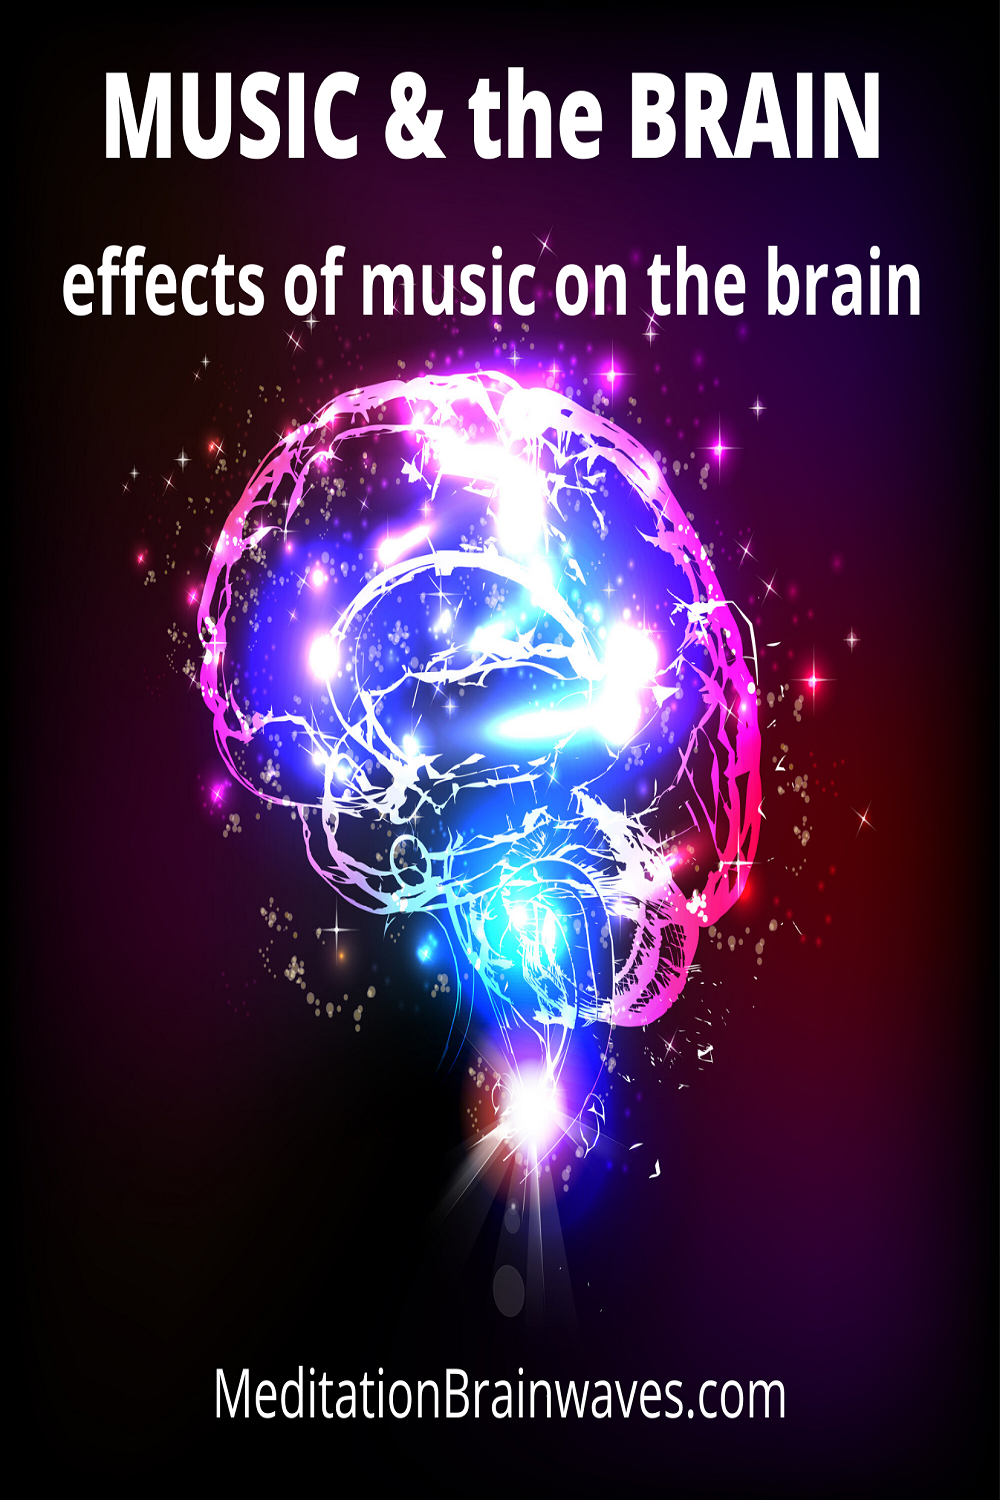 Effects of Music on the Brain Check It Out Find out how music affects your brain Can music really influence the brain and in what ways